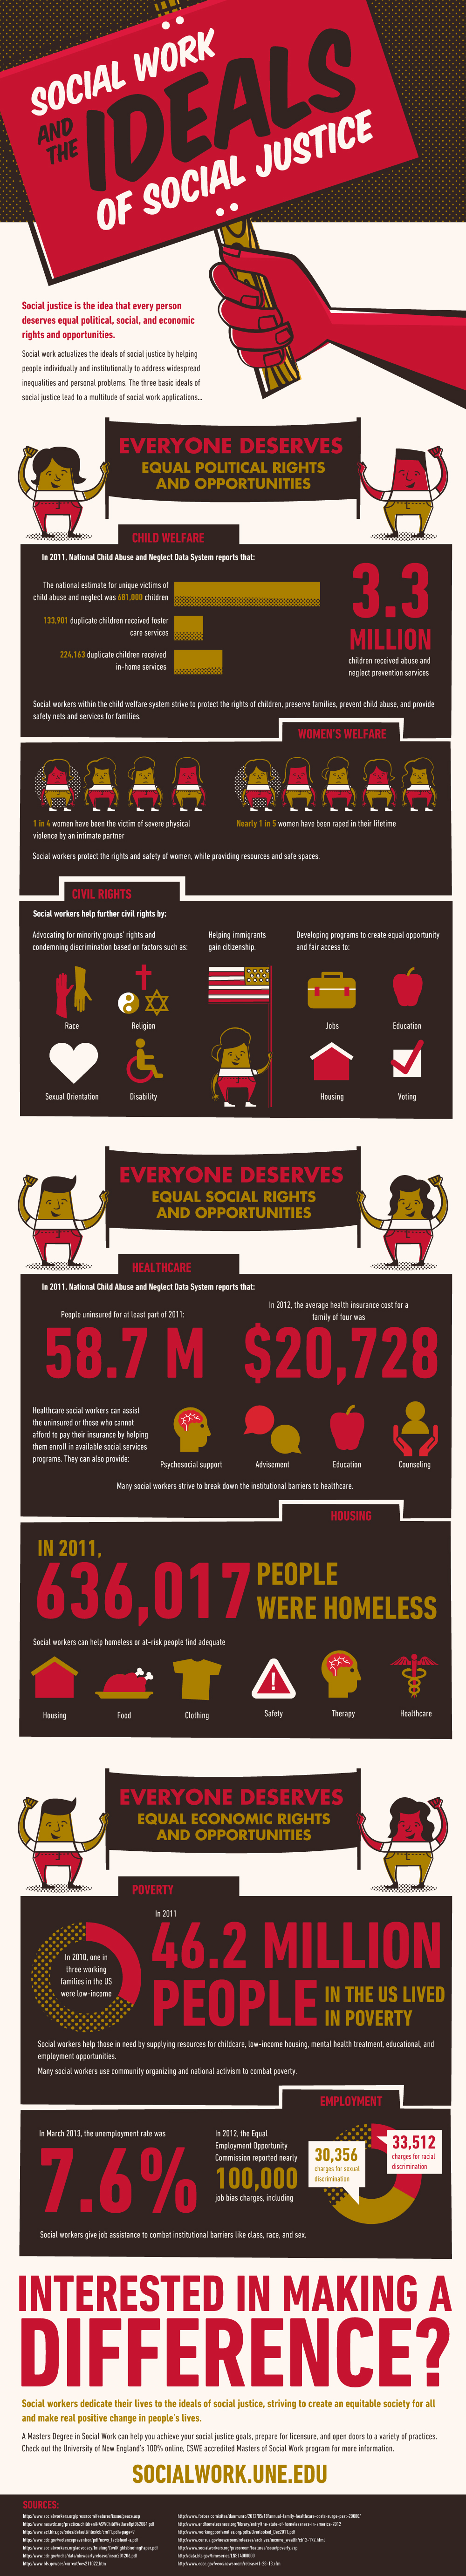 8 Infographic Design Social Welfare Images